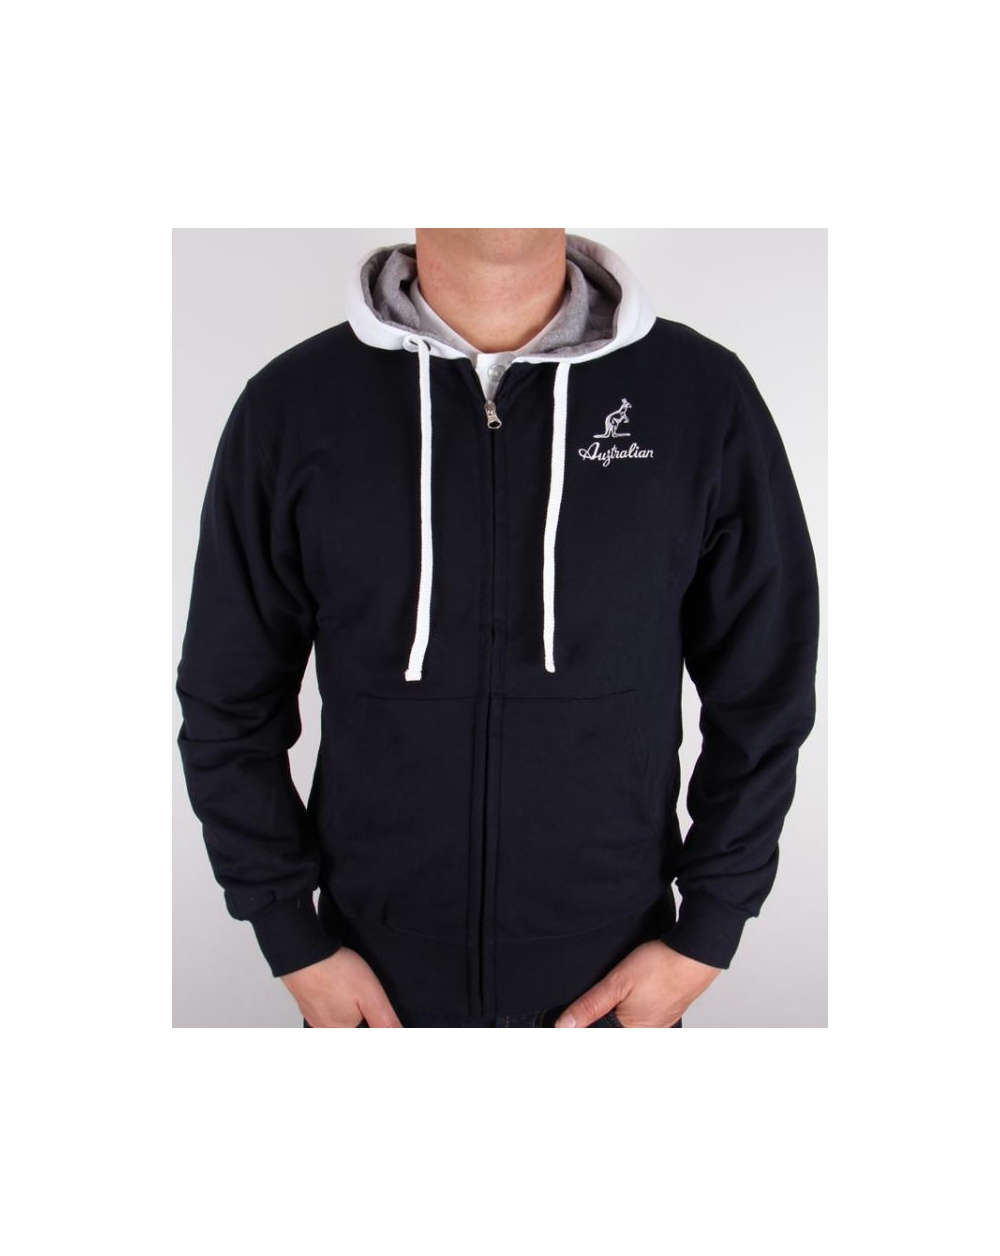 Find Australia Men's Hoodies & Sweatshirts in a variety of colors and styles from zippered hoodies and pullover hoodies to comfy fleece crewneck sweatshirts.